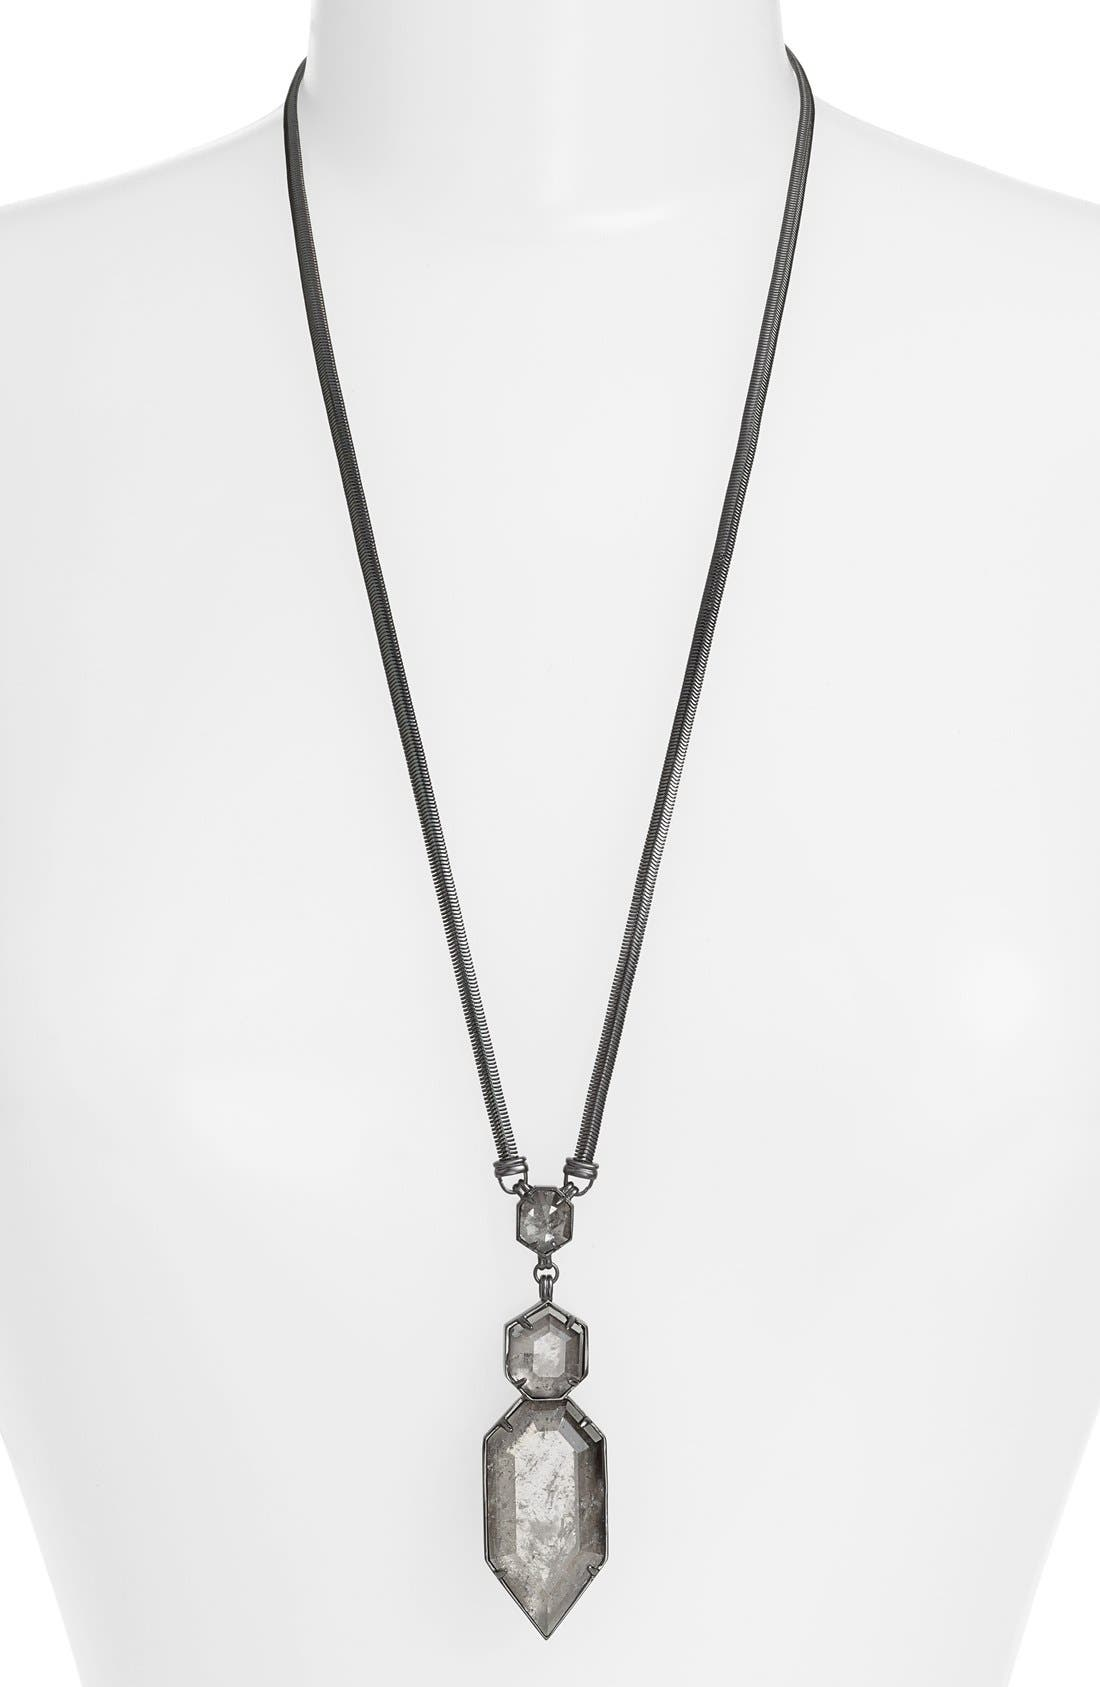 Main Image - Kendra Scott 'Wyatt' Pendant Necklace